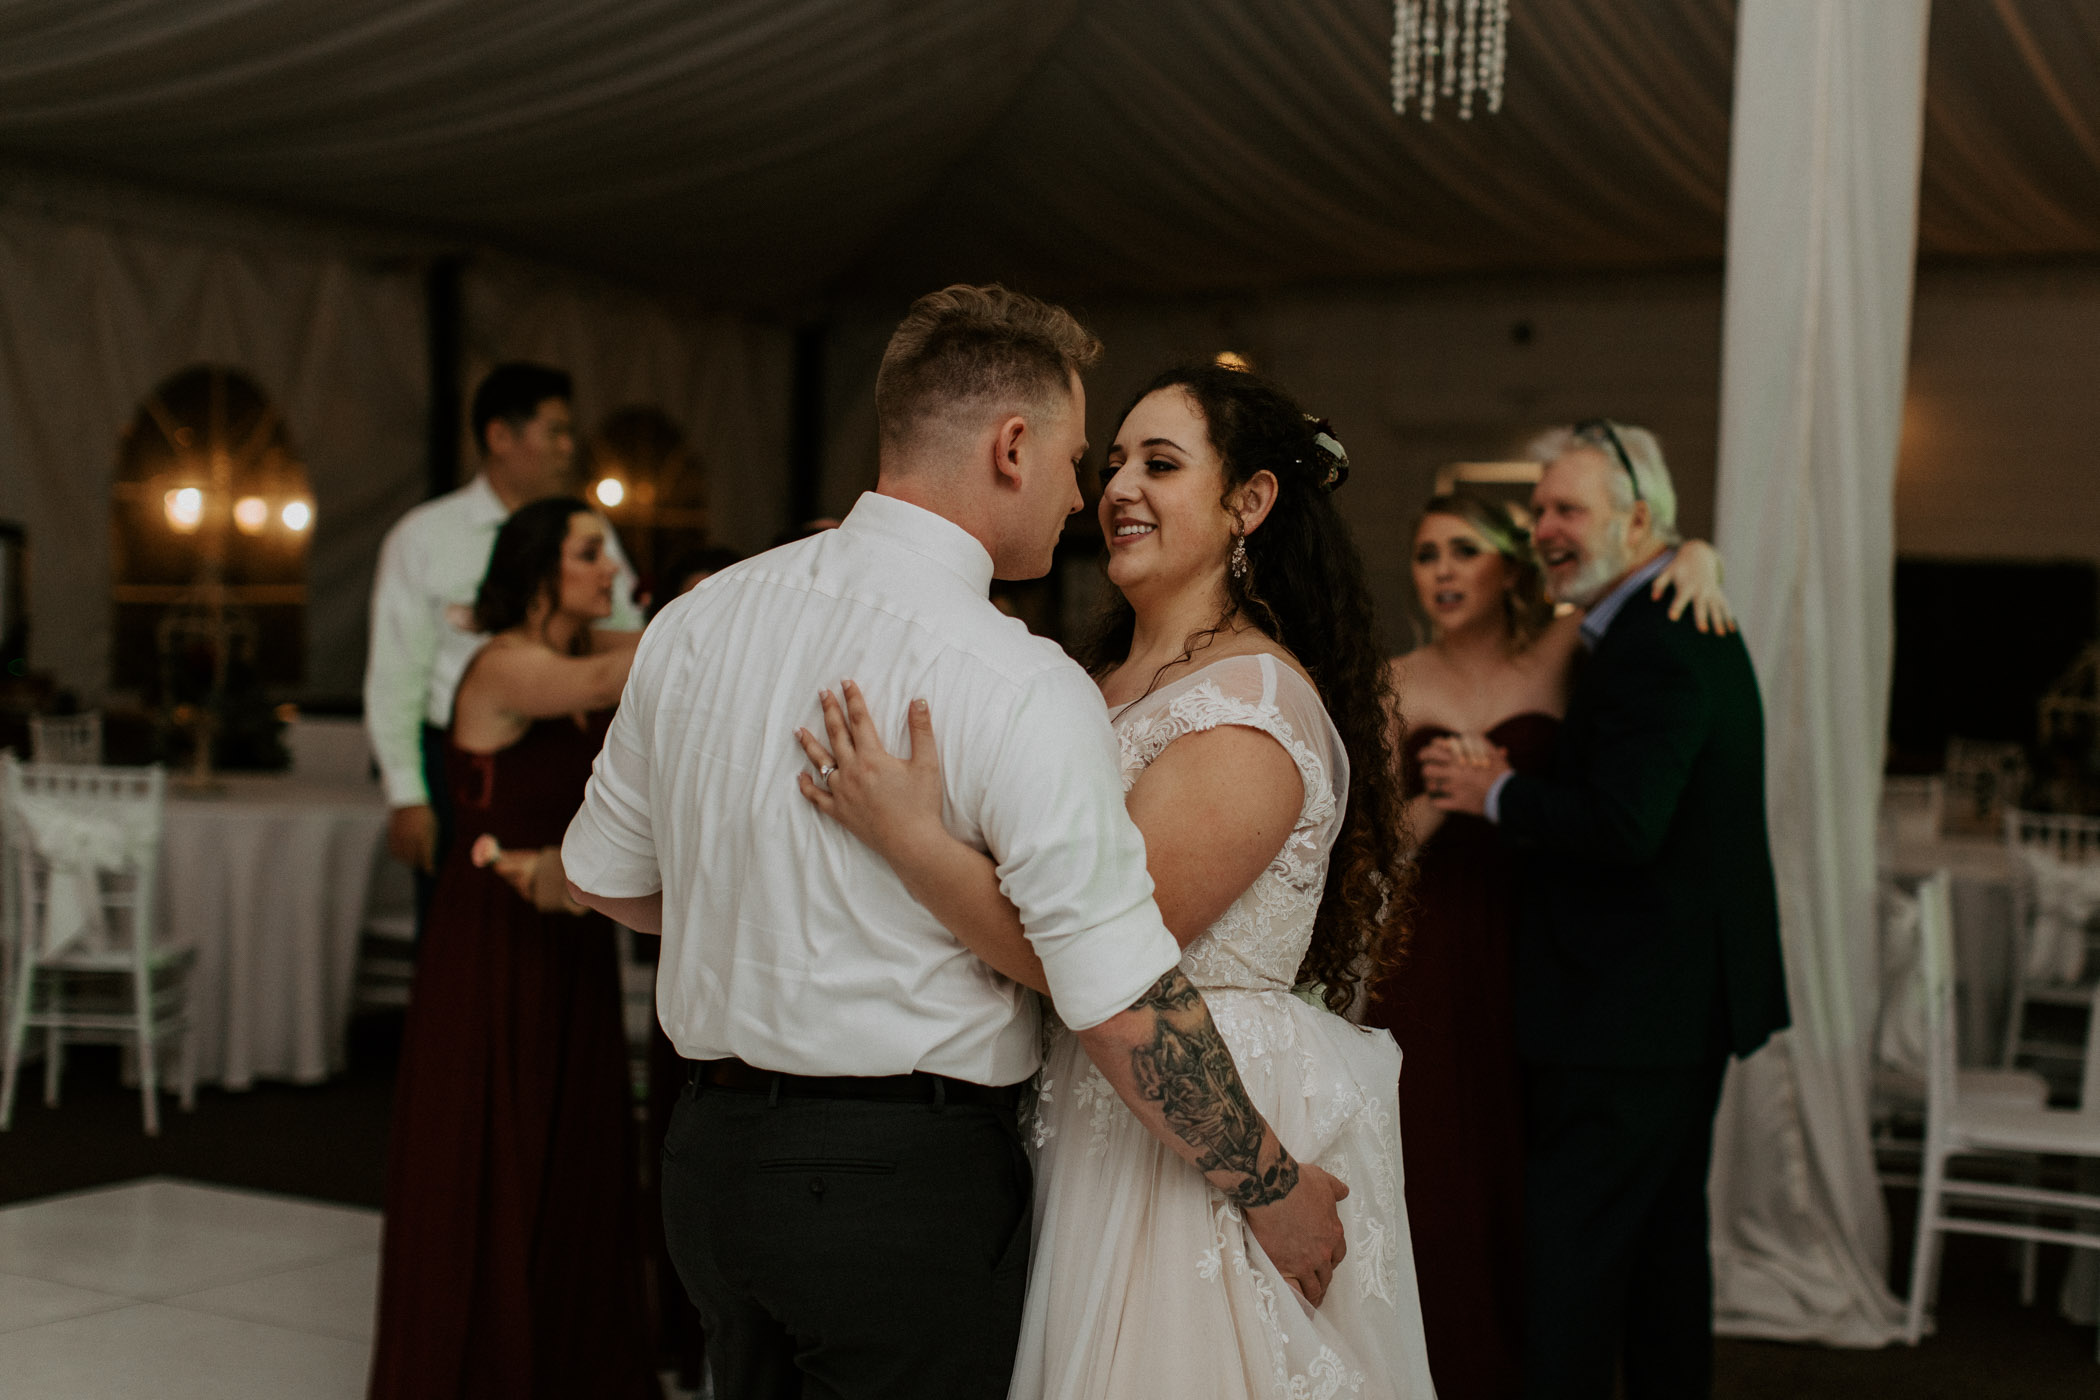 Bride and groom dancing at their California wedding reception